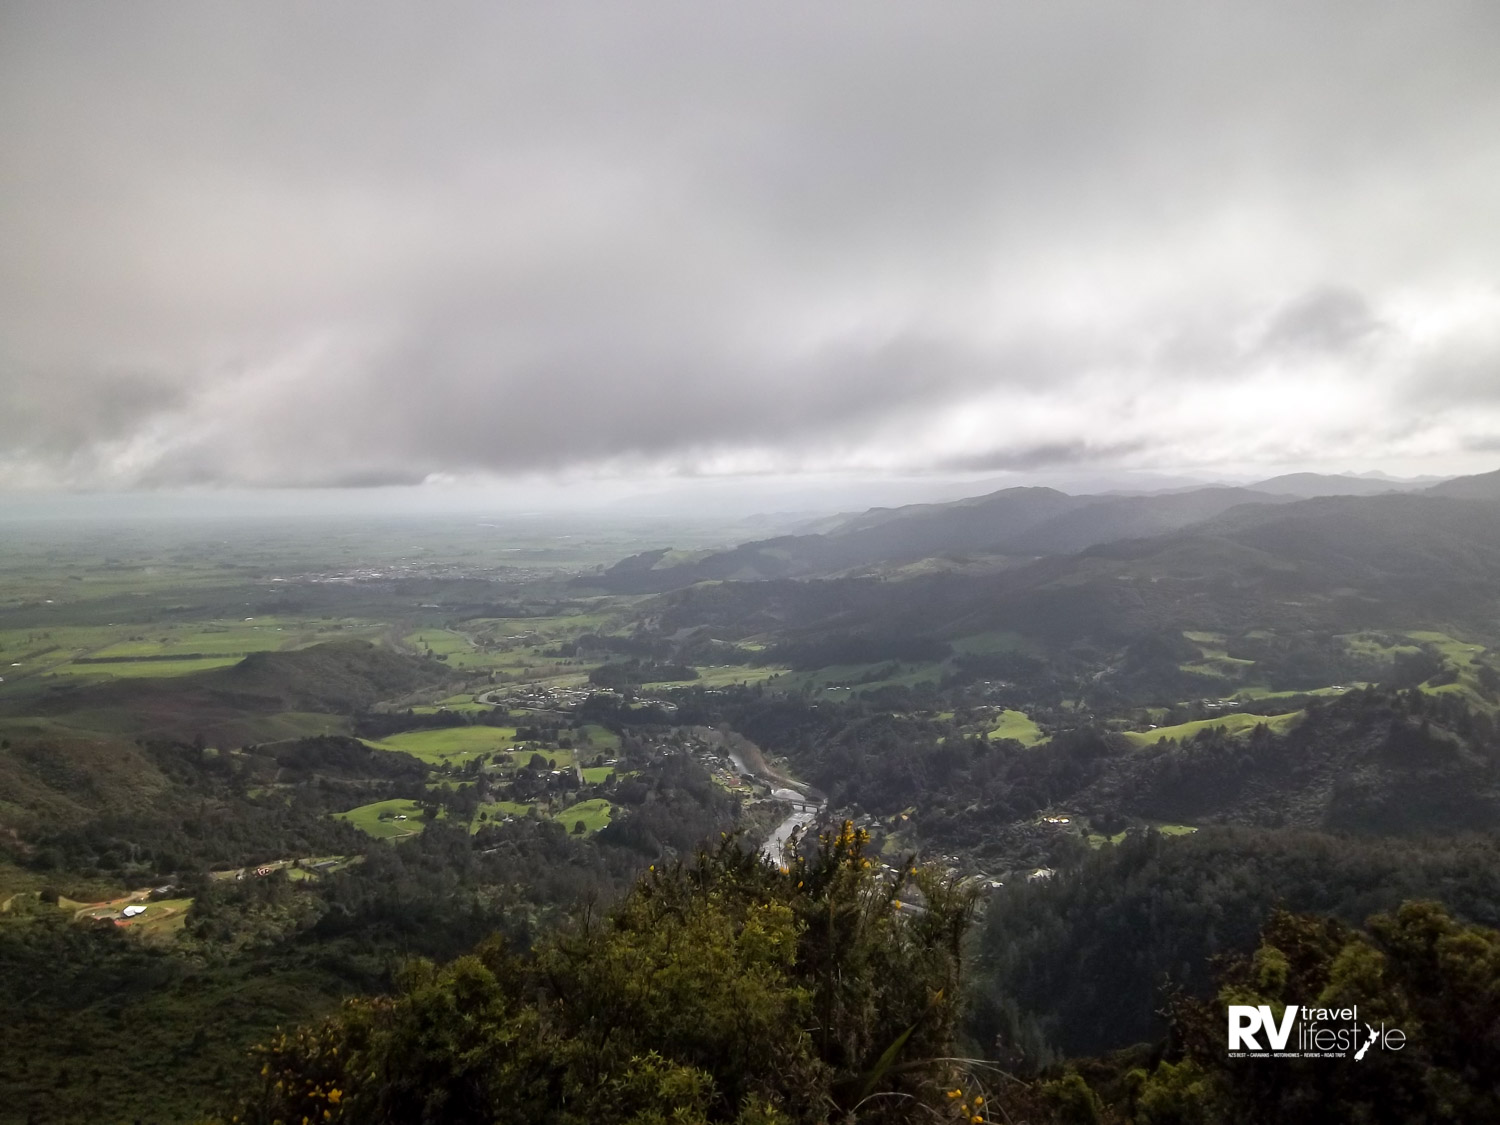 View from the top of Karangahake Mountain